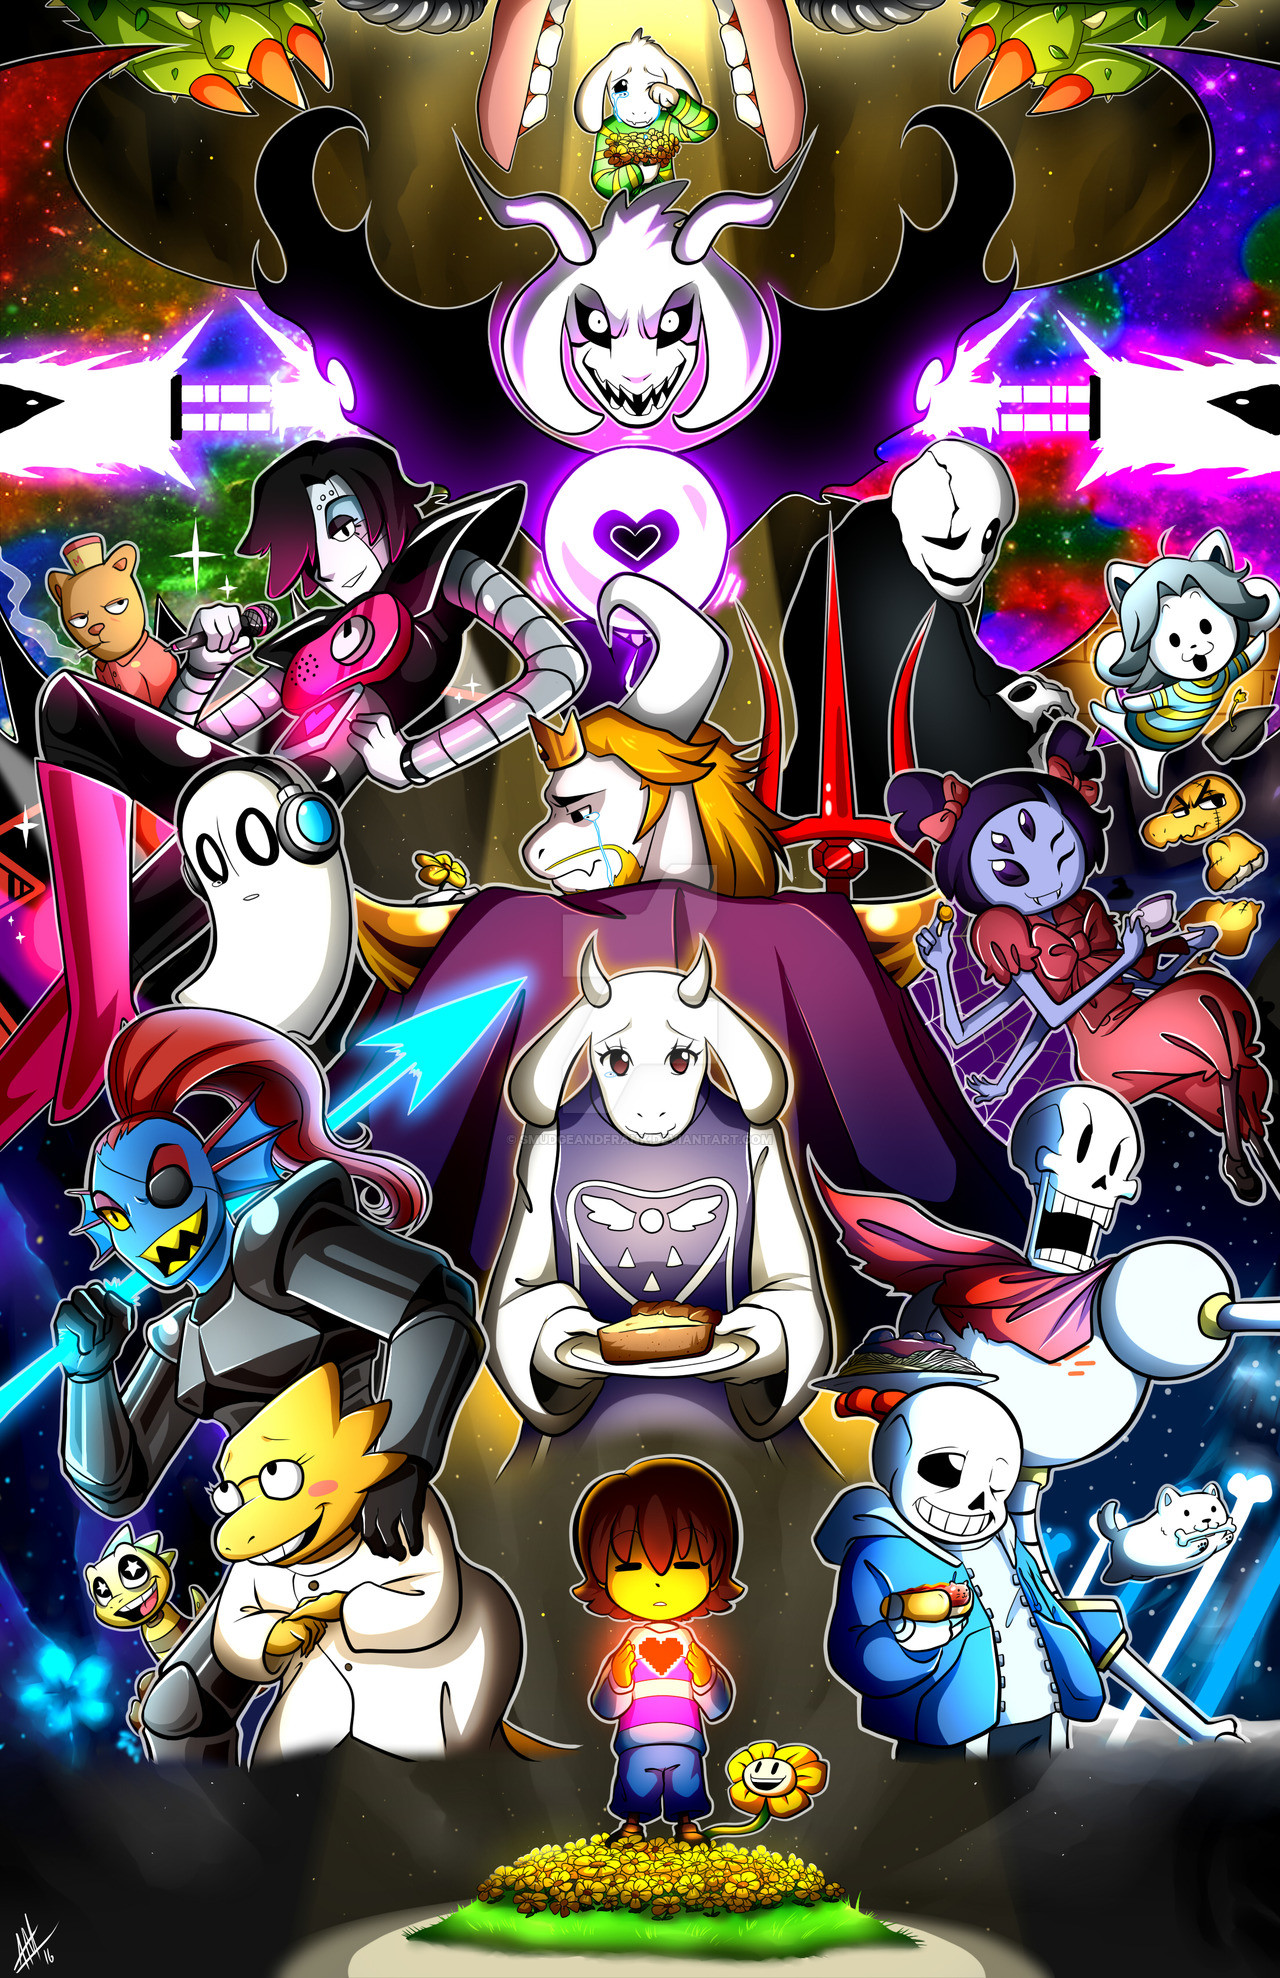 1280x1978 UNDERTALE-The Game images Undertale HD wallpaper and background photos